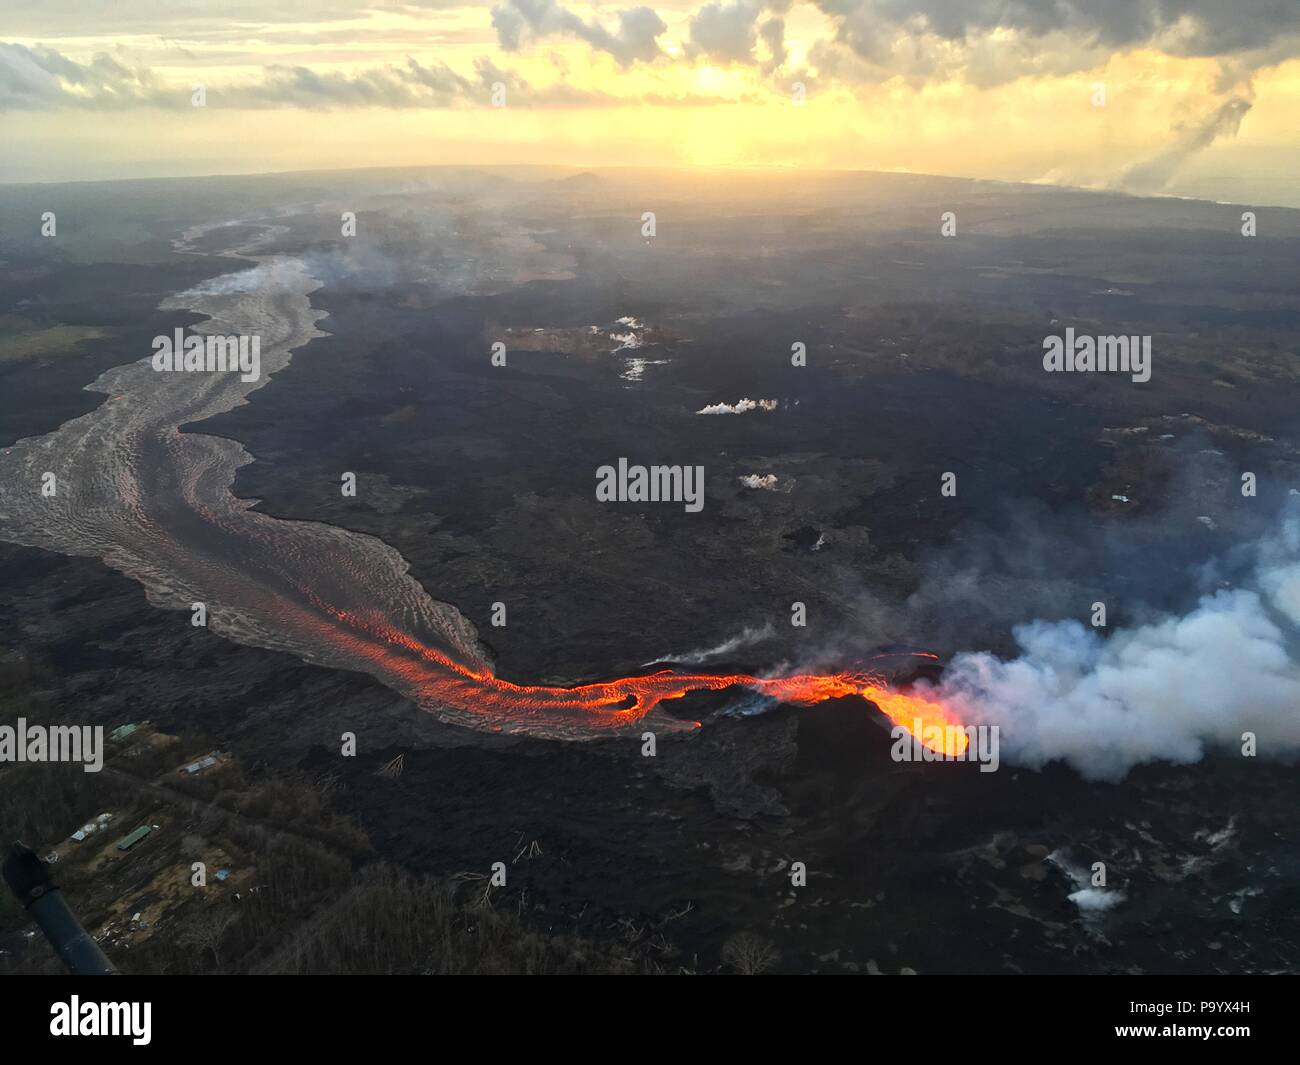 Lava and ash pour out from fissure 8 as a lava channel flows toward the ocean caused by the Kilauea volcano eruption July 17, 2018 in Hawaii. - Stock Image